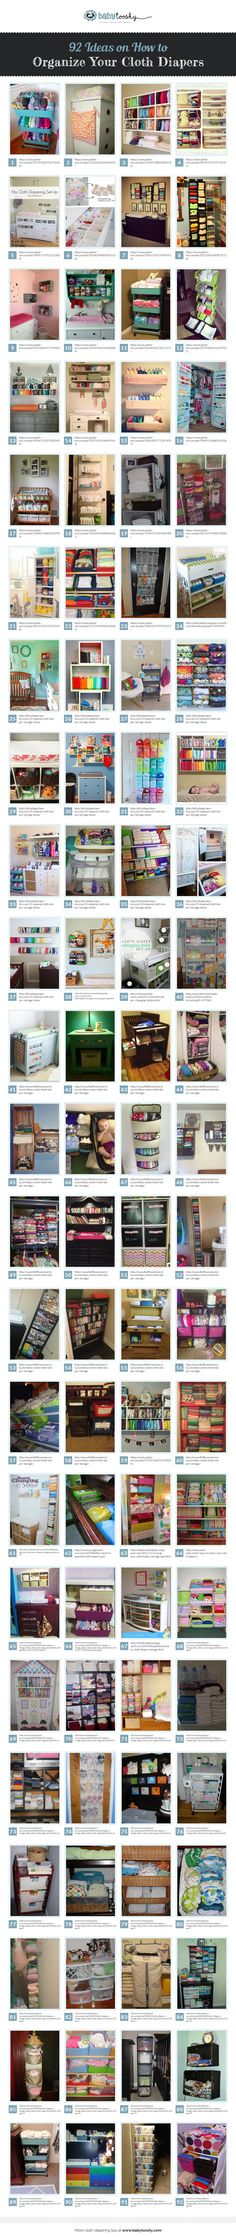 Need to organize your cloth diapers? This is a great collection of ideas on how to KEEP  them organized. Here are 92 Cloth Diaper Storage ideas. Please repin. http://babytooshy.com/92-cloth-diaper-storage-ideas/